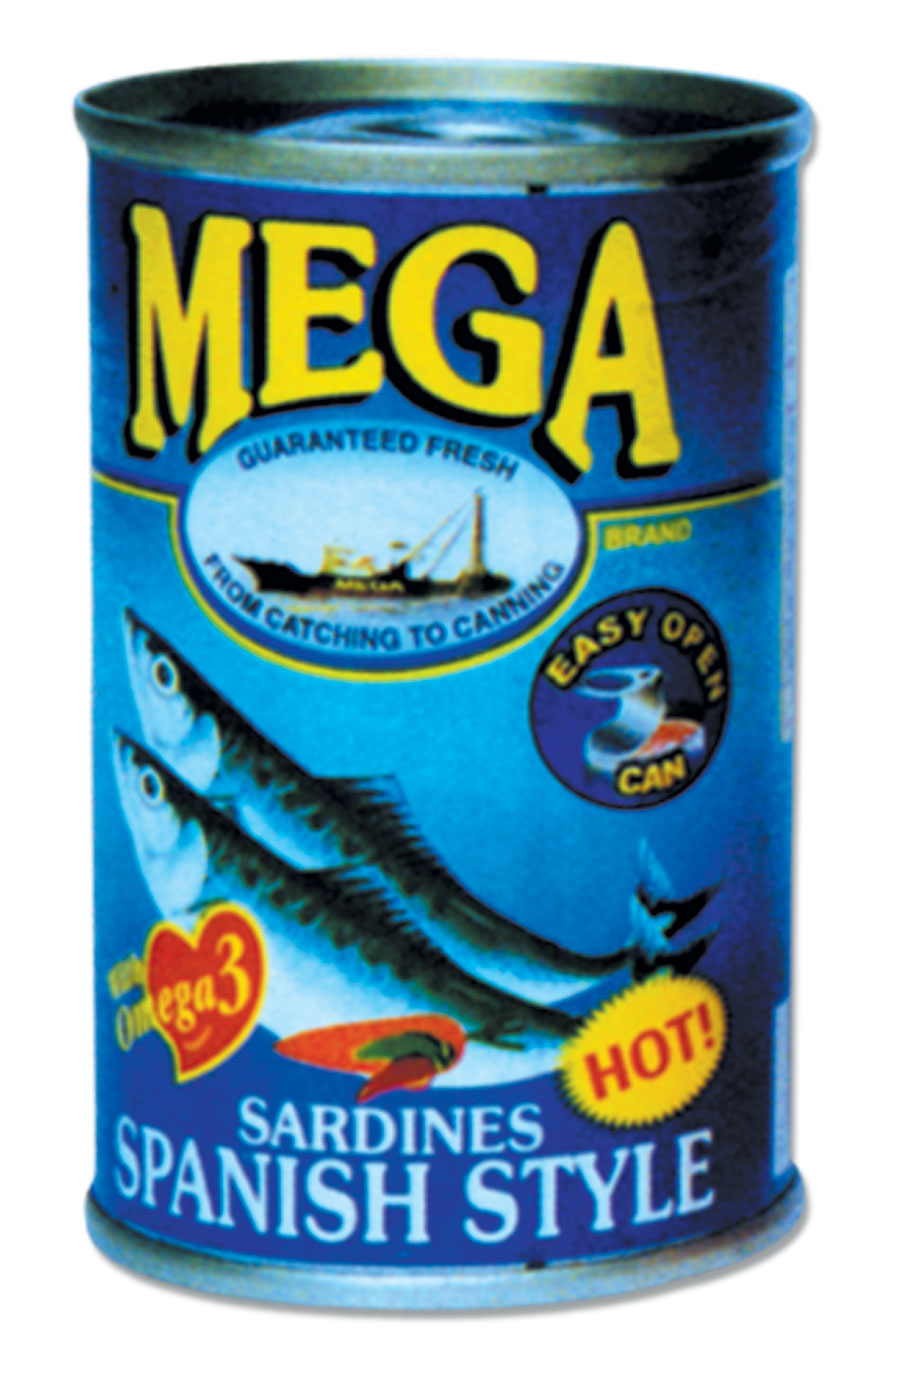 Sardines in Jitney Cans